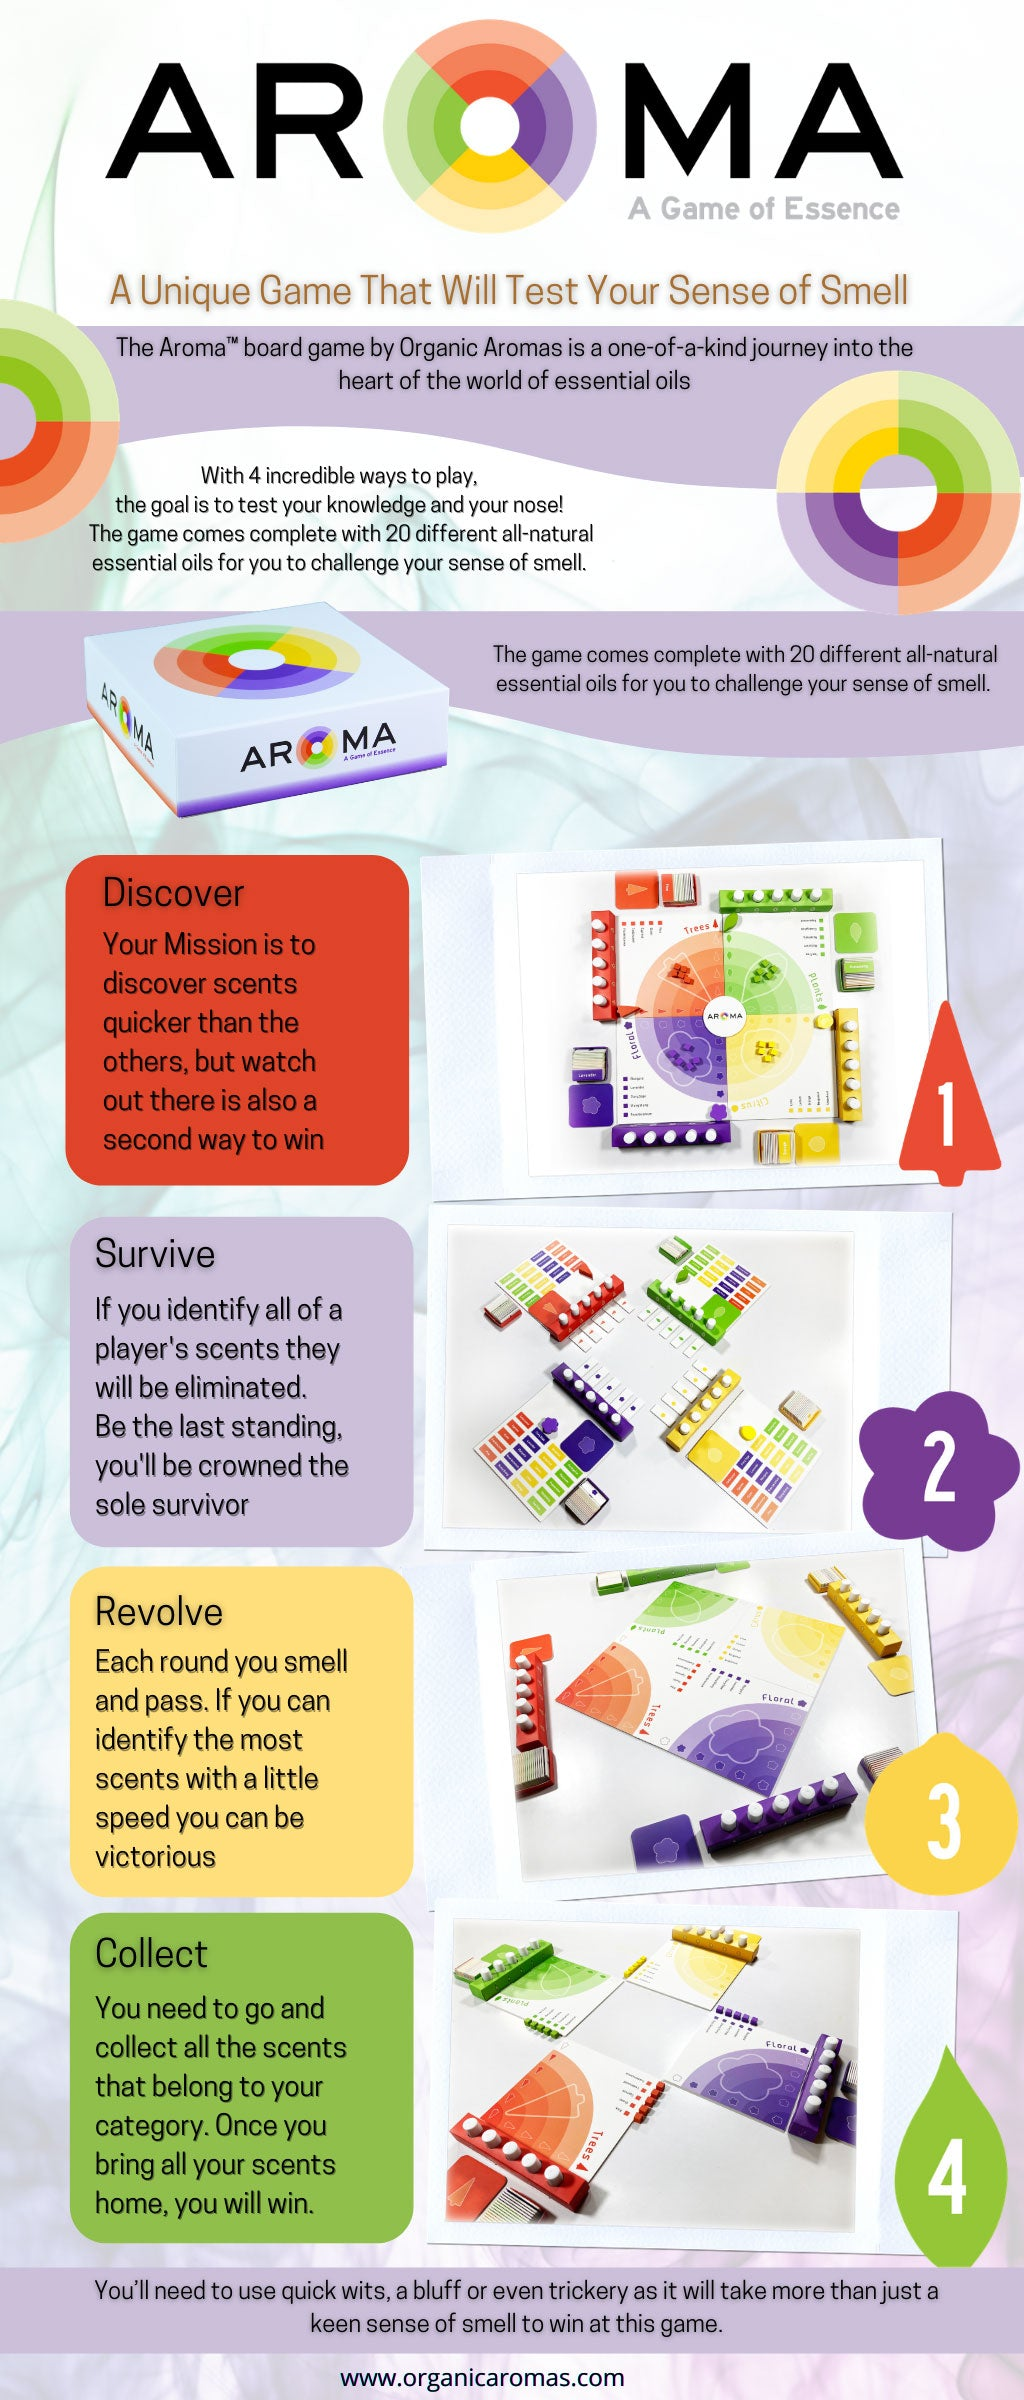 Aroma - A Game of Essence | New Essential Oil Based Board Game